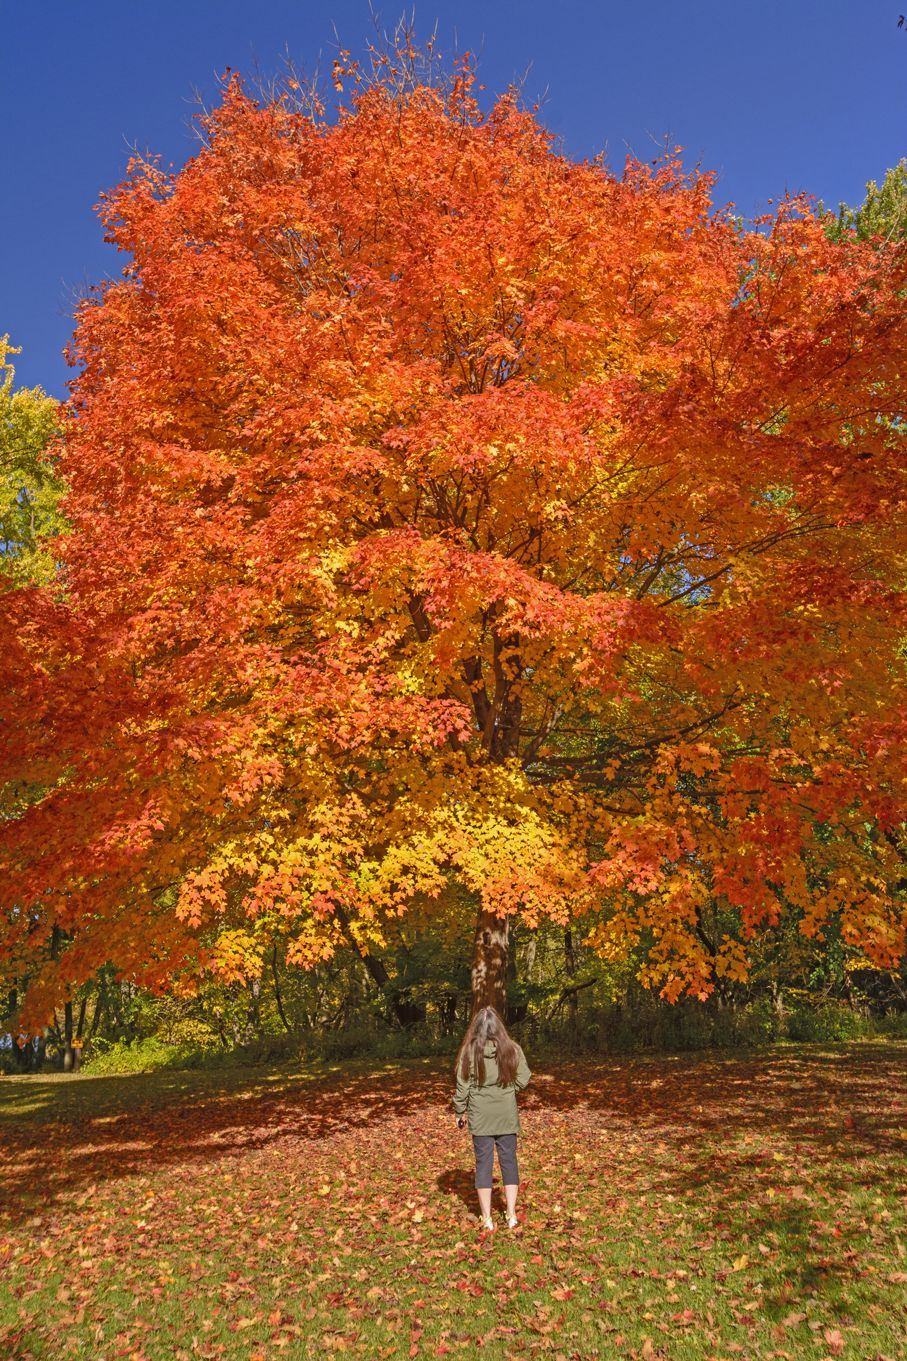 The 5 Best Trees for Your Yard | House TIpster